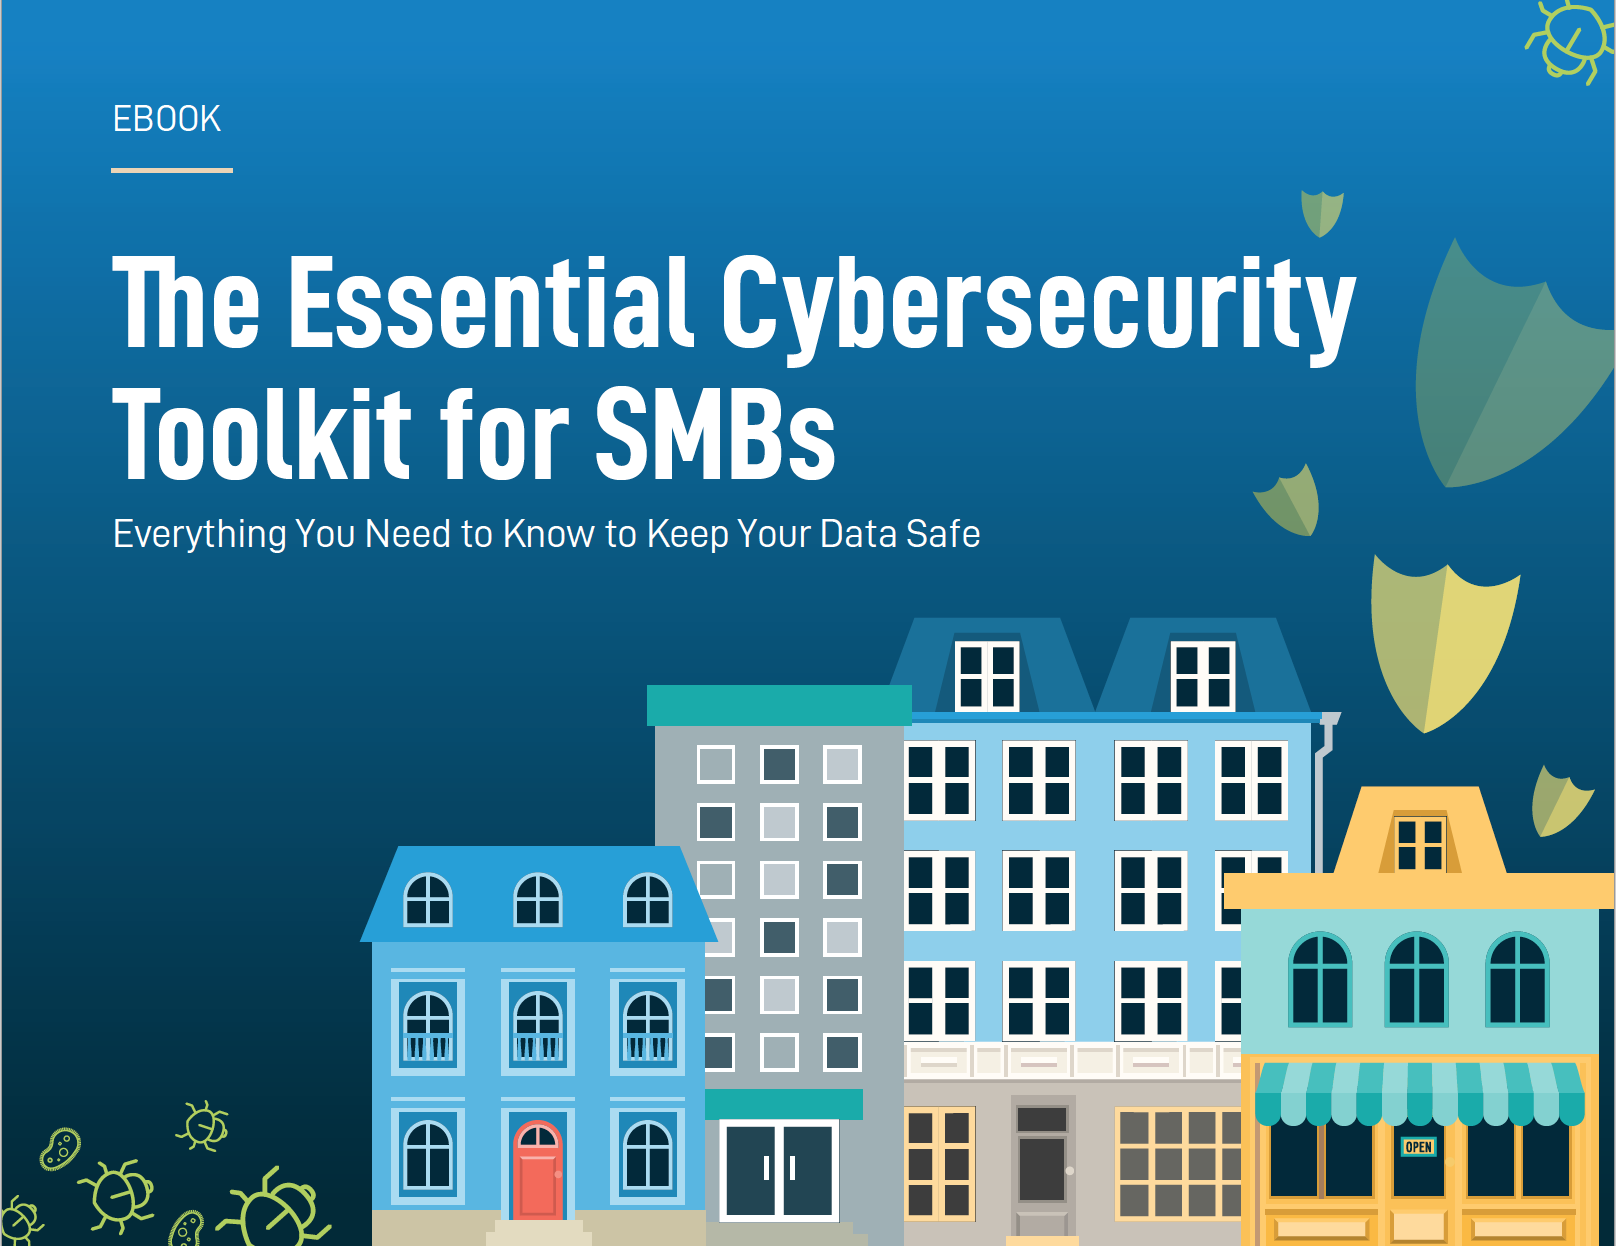 The essential cybersecurity toolkit for SMBs